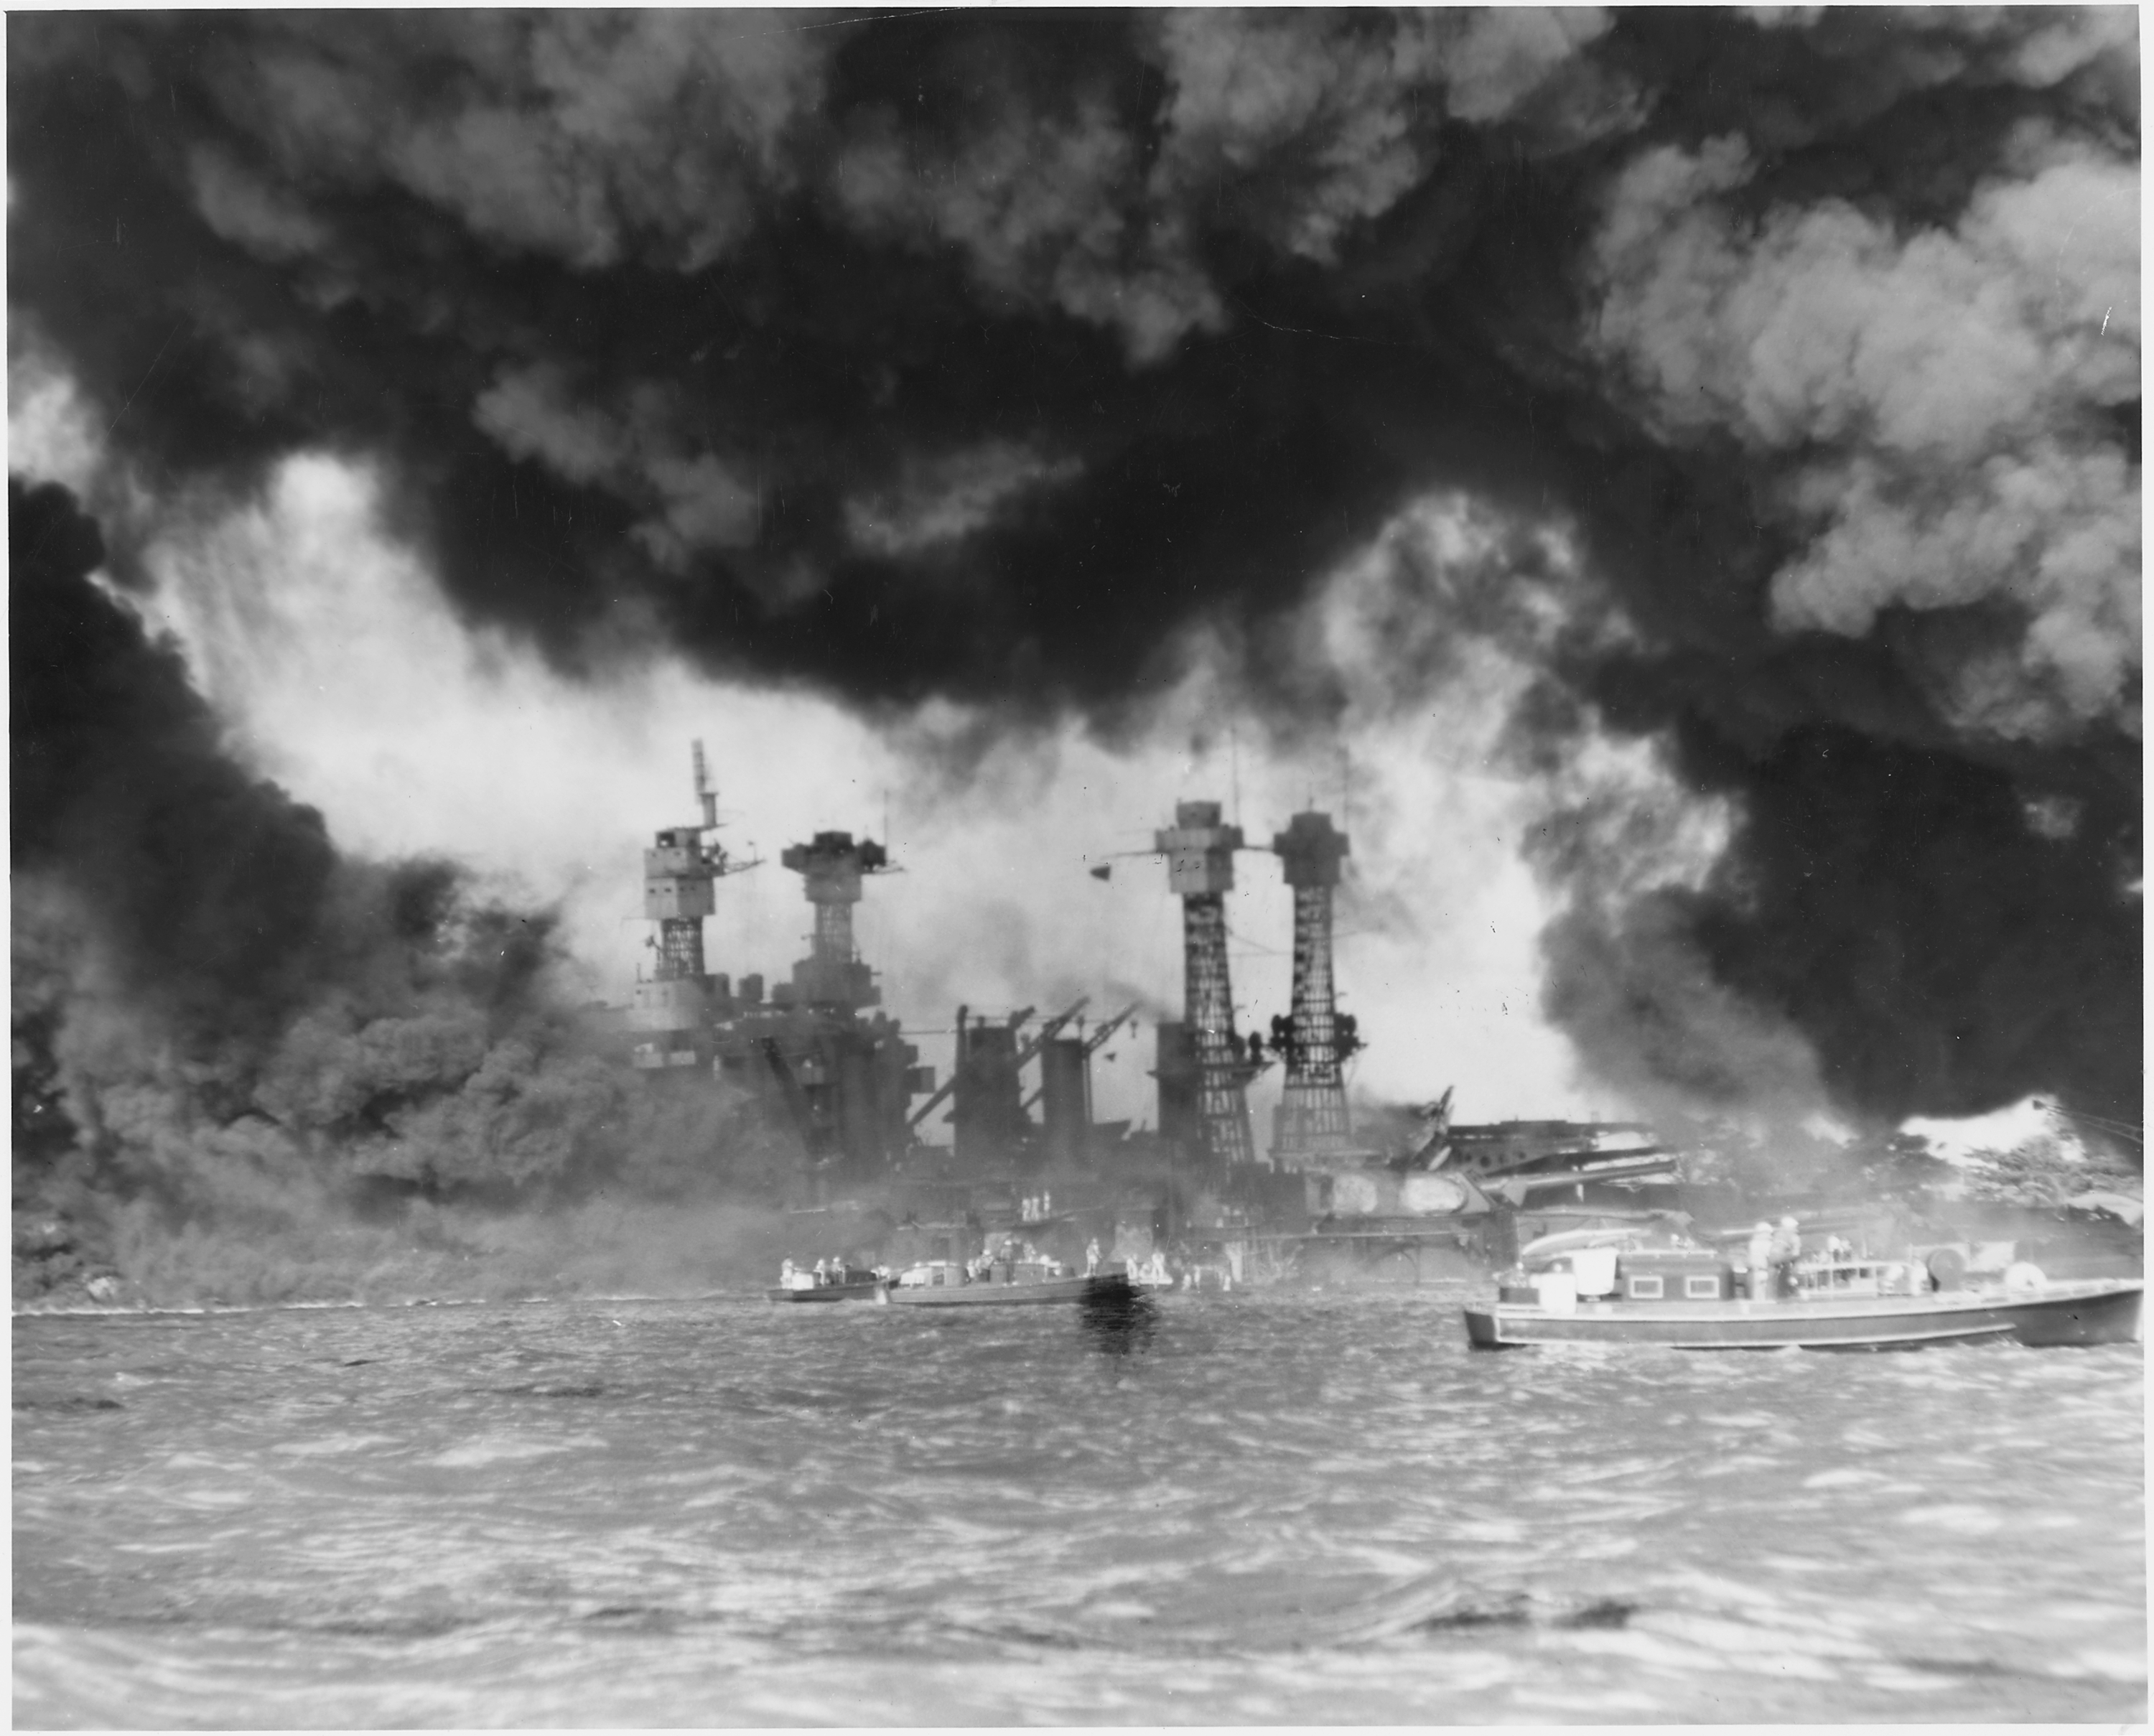 http://upload.wikimedia.org/wikipedia/commons/e/ed/Japanese_attack_on_Pearl_Harbor,_Hawaii_-_NARA_-_197288.jpg